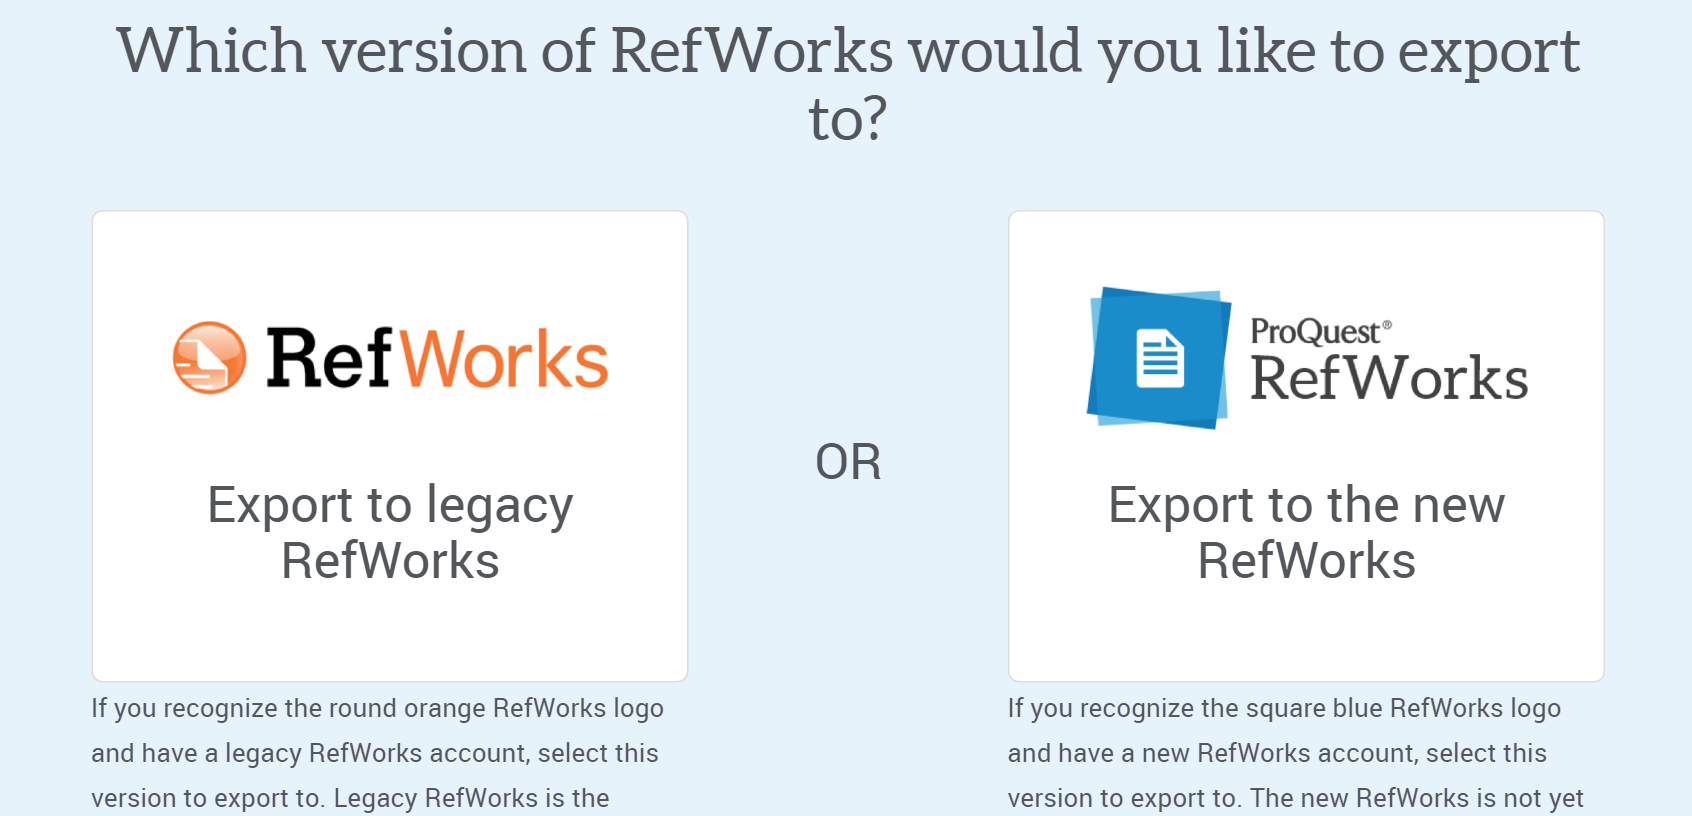 Choice of Legacy Refworks or new RefWorks